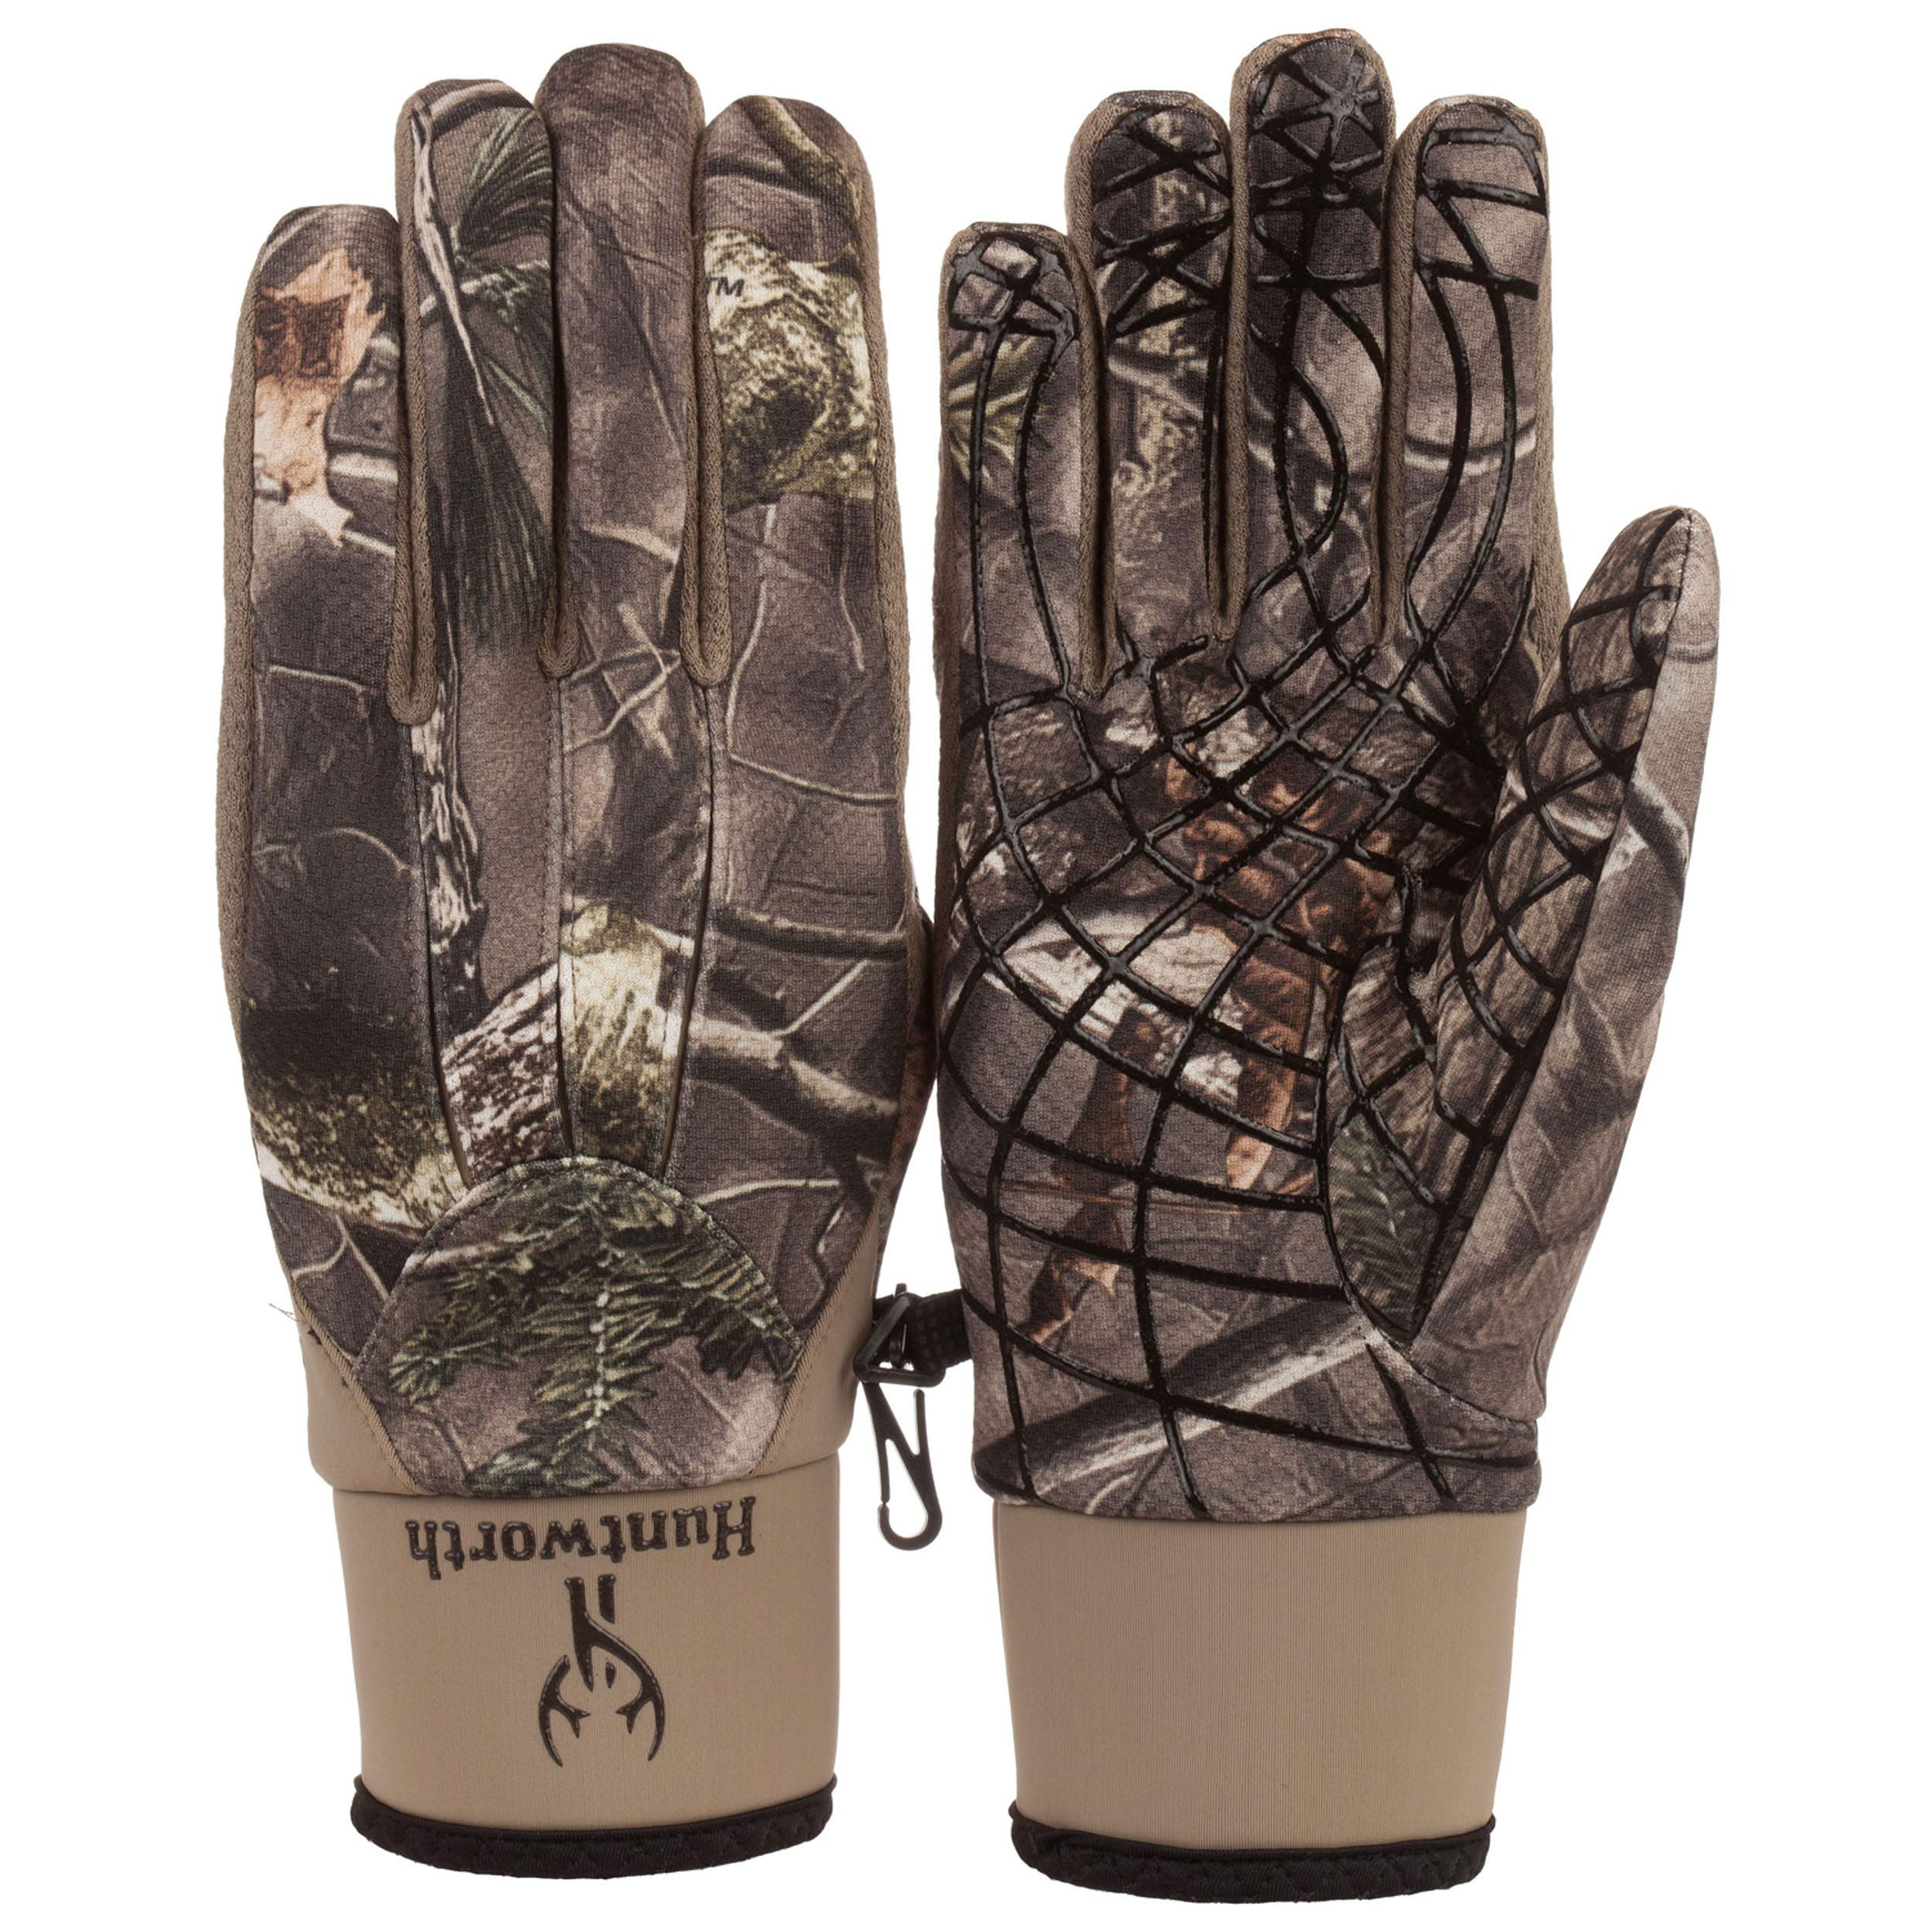 Huntworth Tech Shooter's Gloves, Hidden, X Large by Huntworth